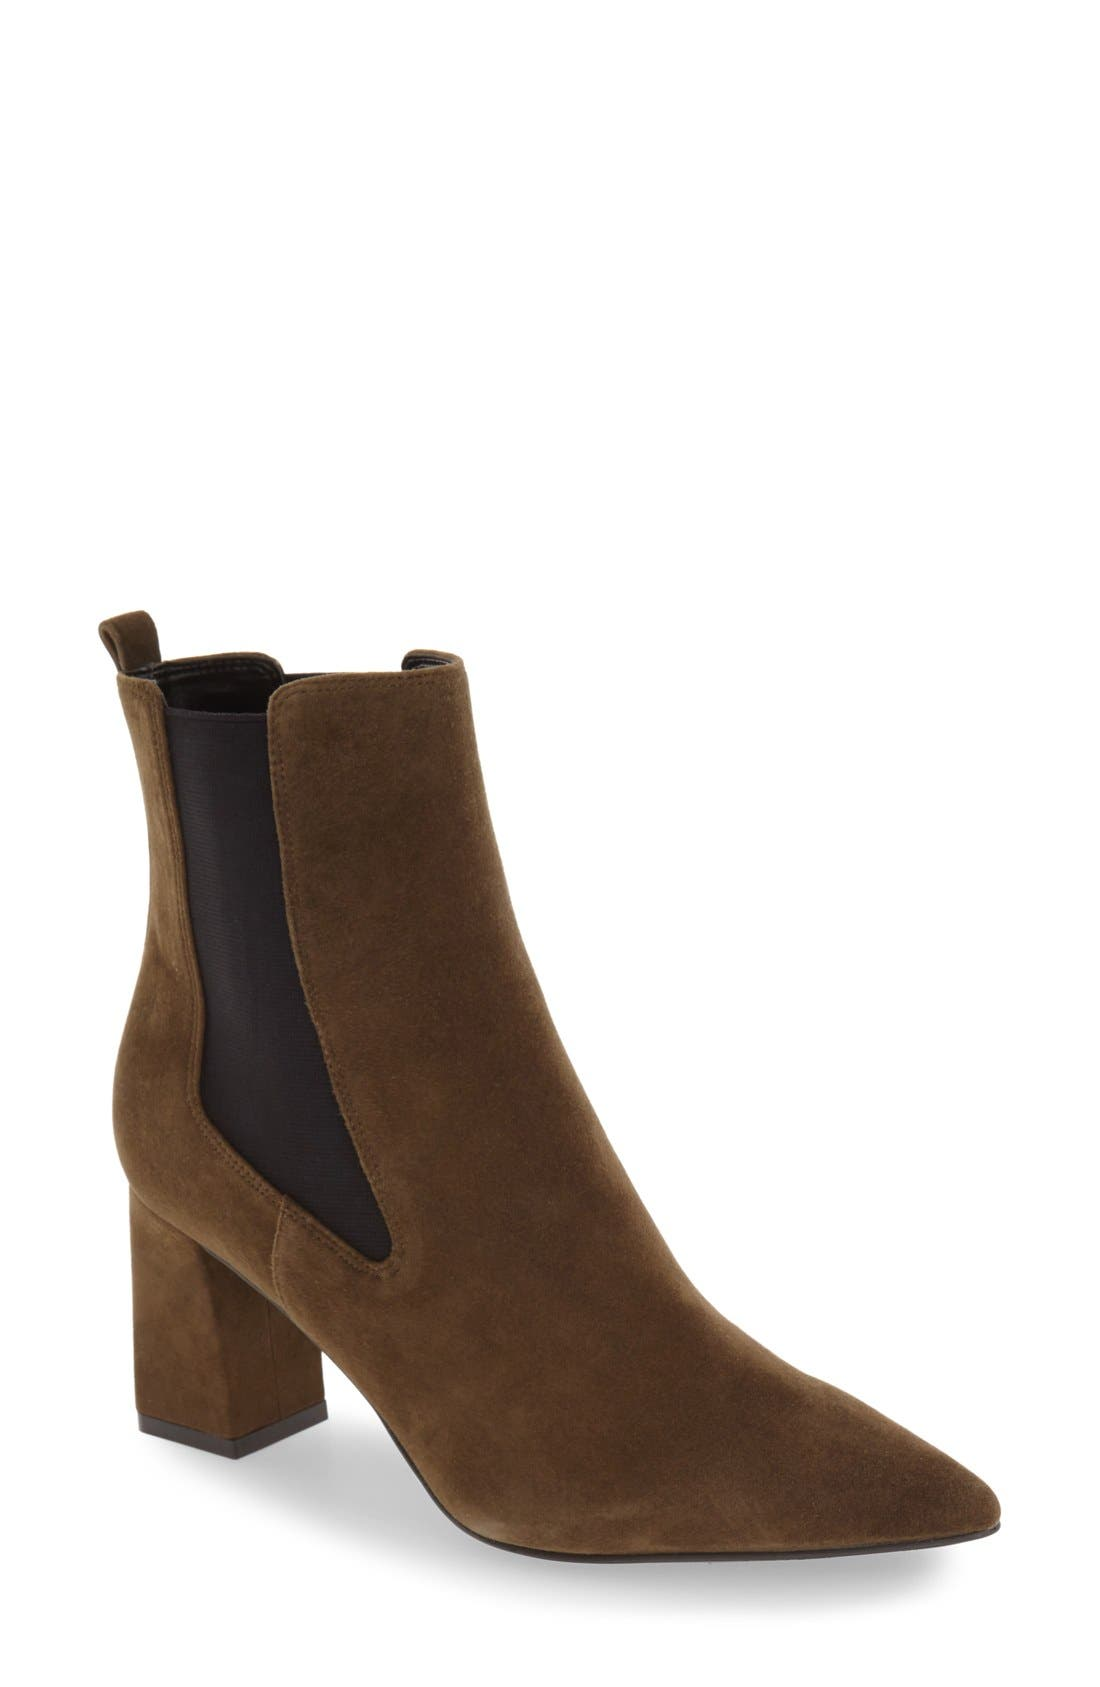 Alternate Image 1 Selected - Marc Fisher LTD 'Zanna' Chelsea Boot (Women)